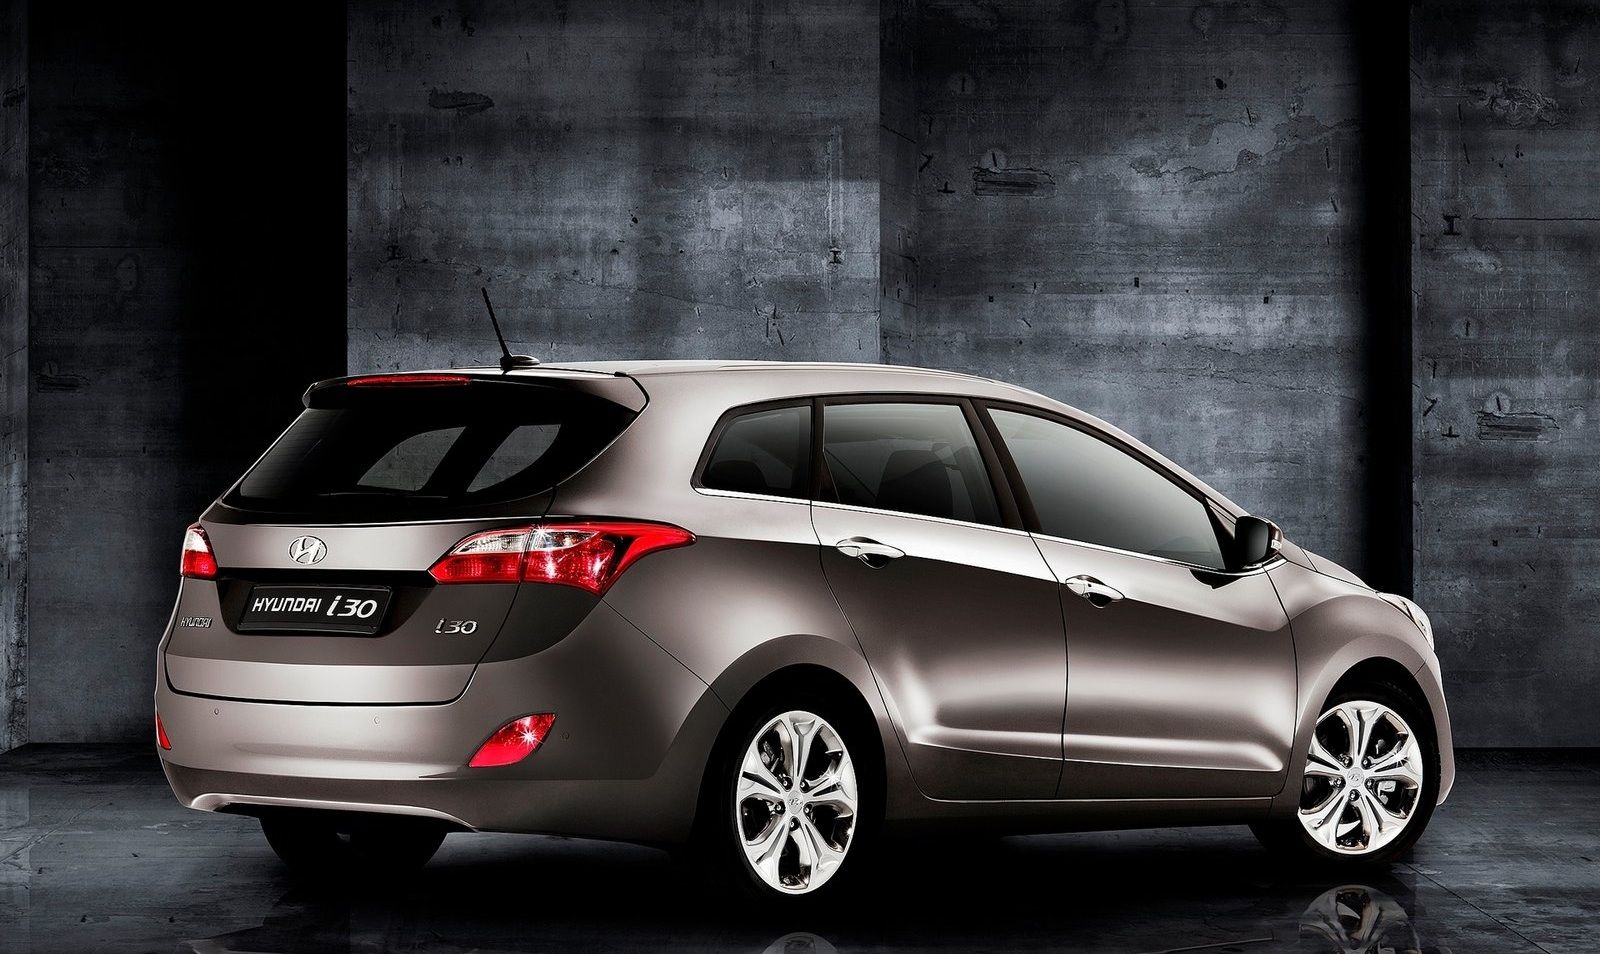 hyundai i30 wagon specs 2012 2013 2014 2015 2016 2017 autoevolution. Black Bedroom Furniture Sets. Home Design Ideas